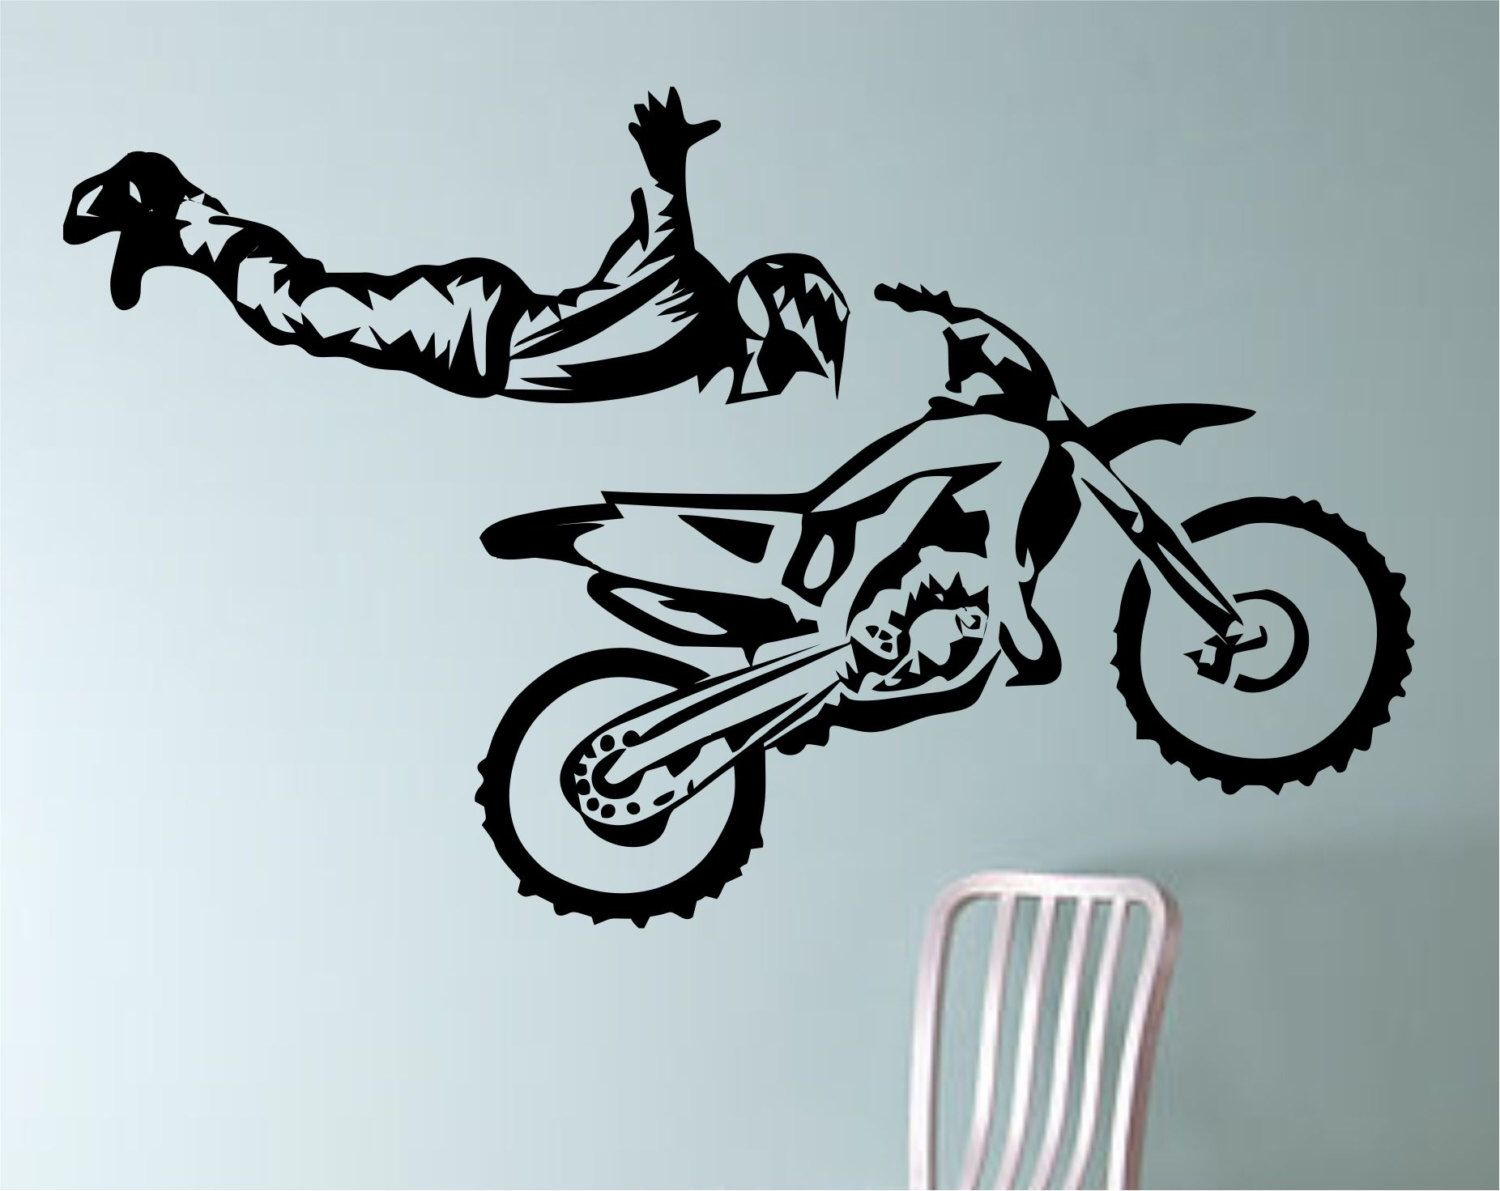 dirtbike wall decal  motocross sticker  motocross wall decals  - dirt bike biker superman trick motorcycle vinyl wall decal sticker artdecor bedroom design mural racing